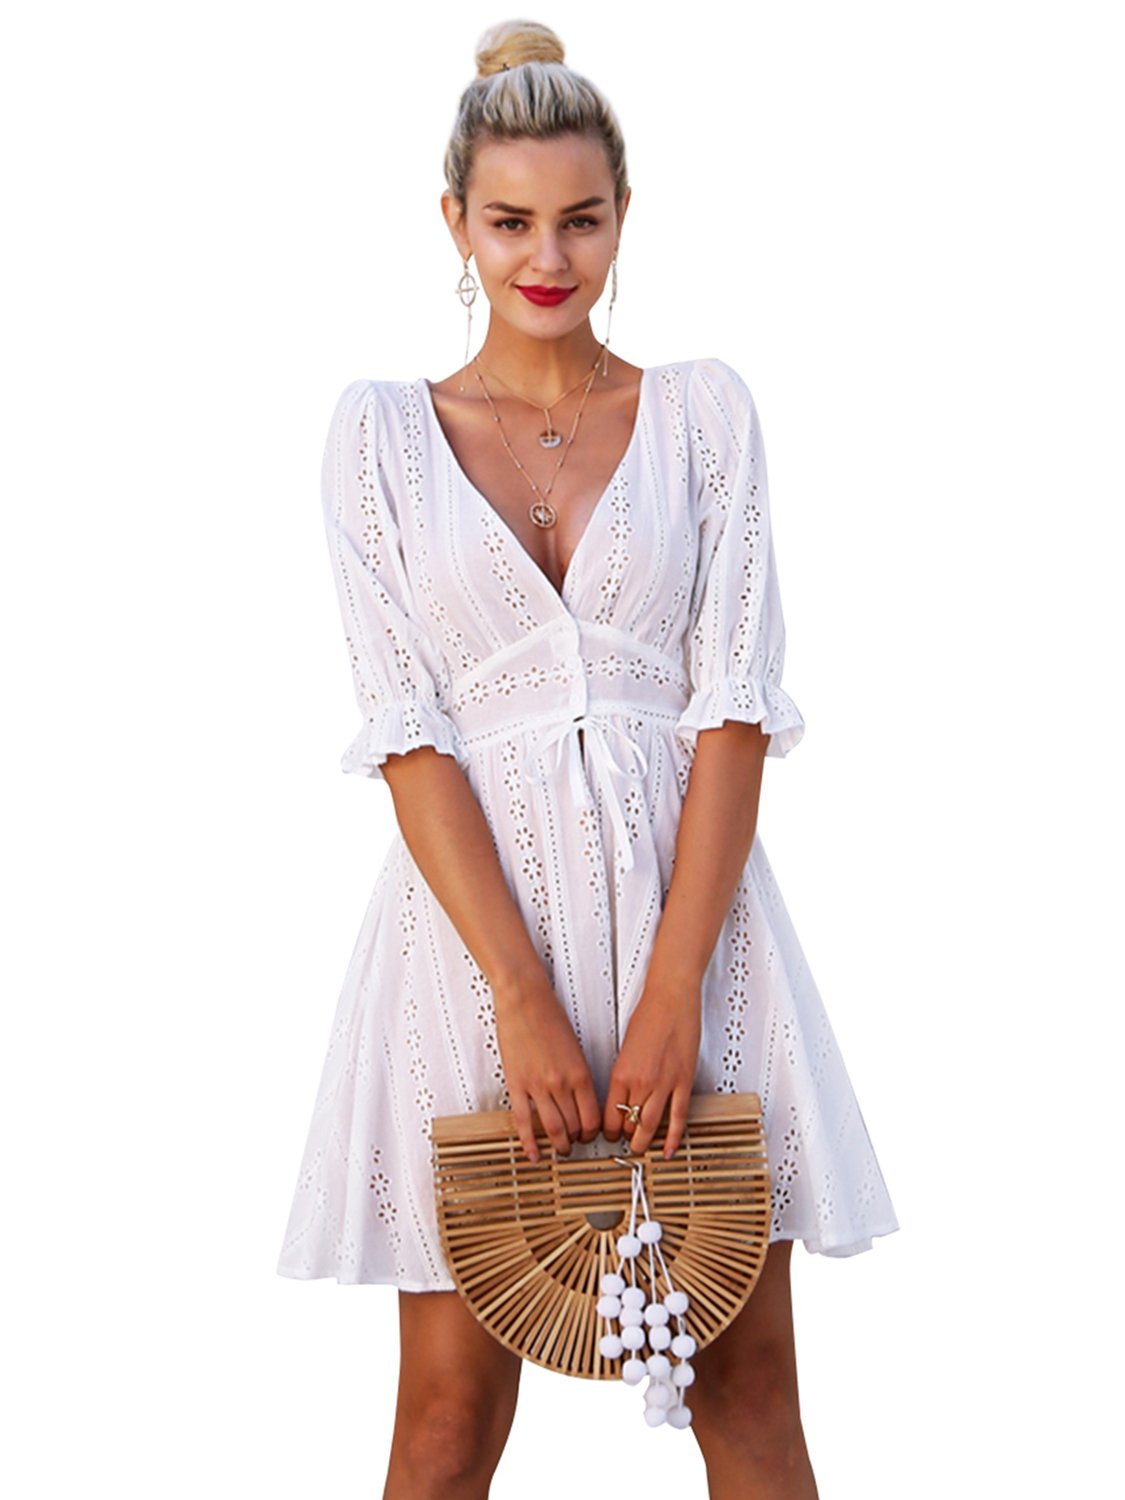 Simplee Womens Sexy V Neck Hollow Out Cotton Dress Beach Party Wedding Mini Dress,White 2,4/6(Small)